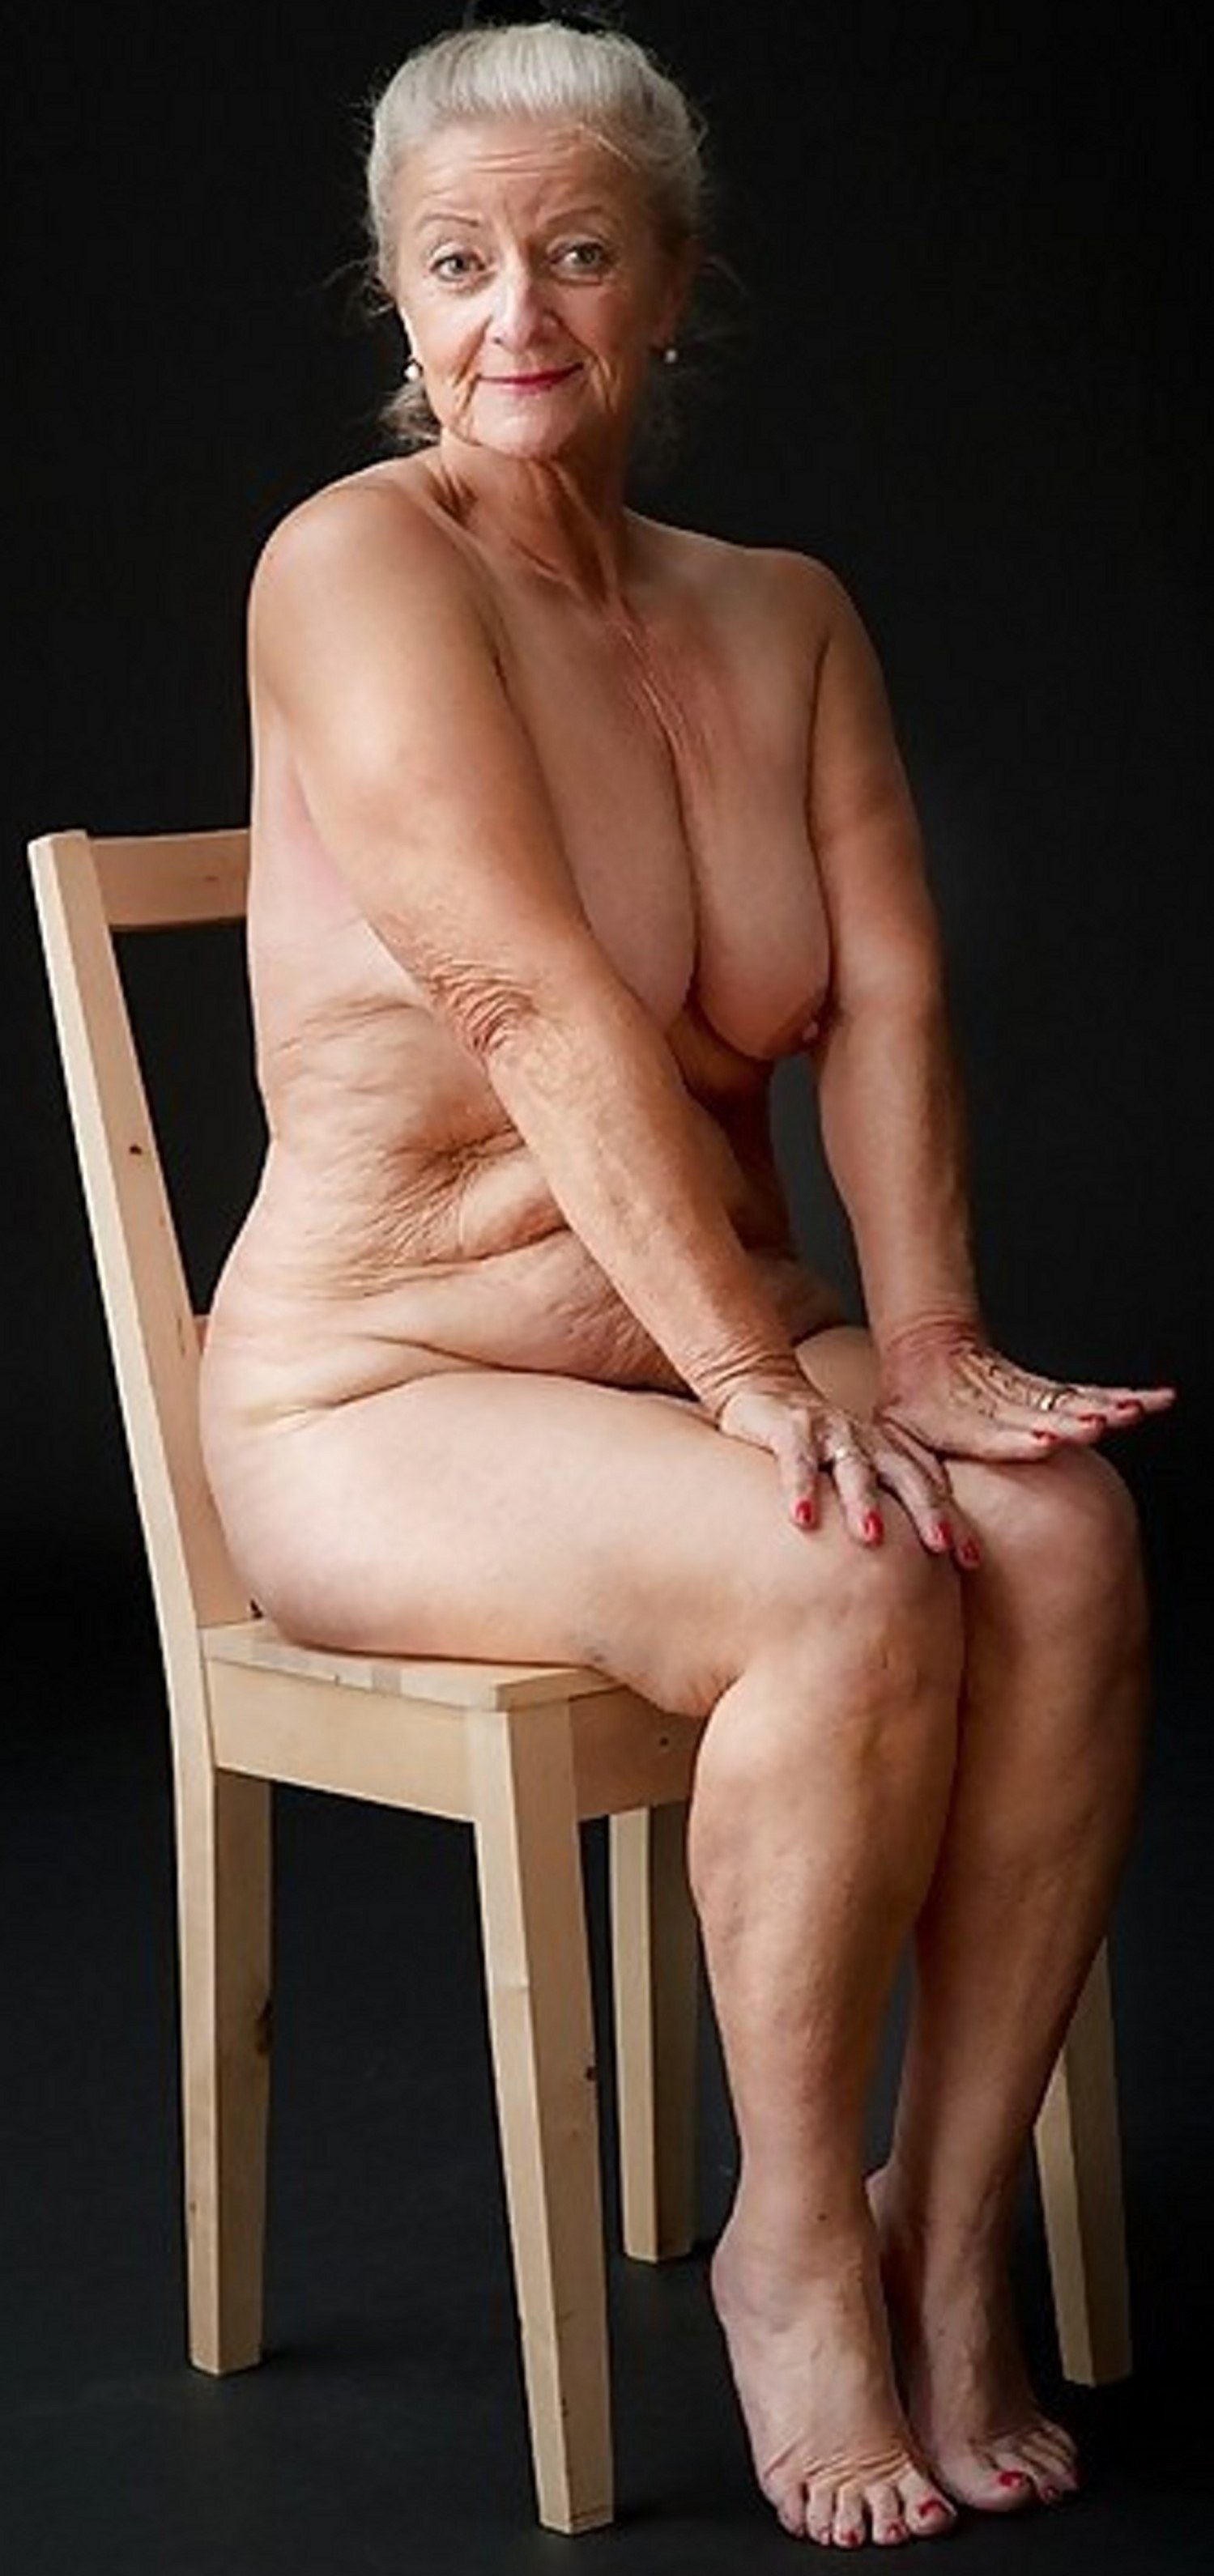 pokemen-art-of-naked-old-woman-young